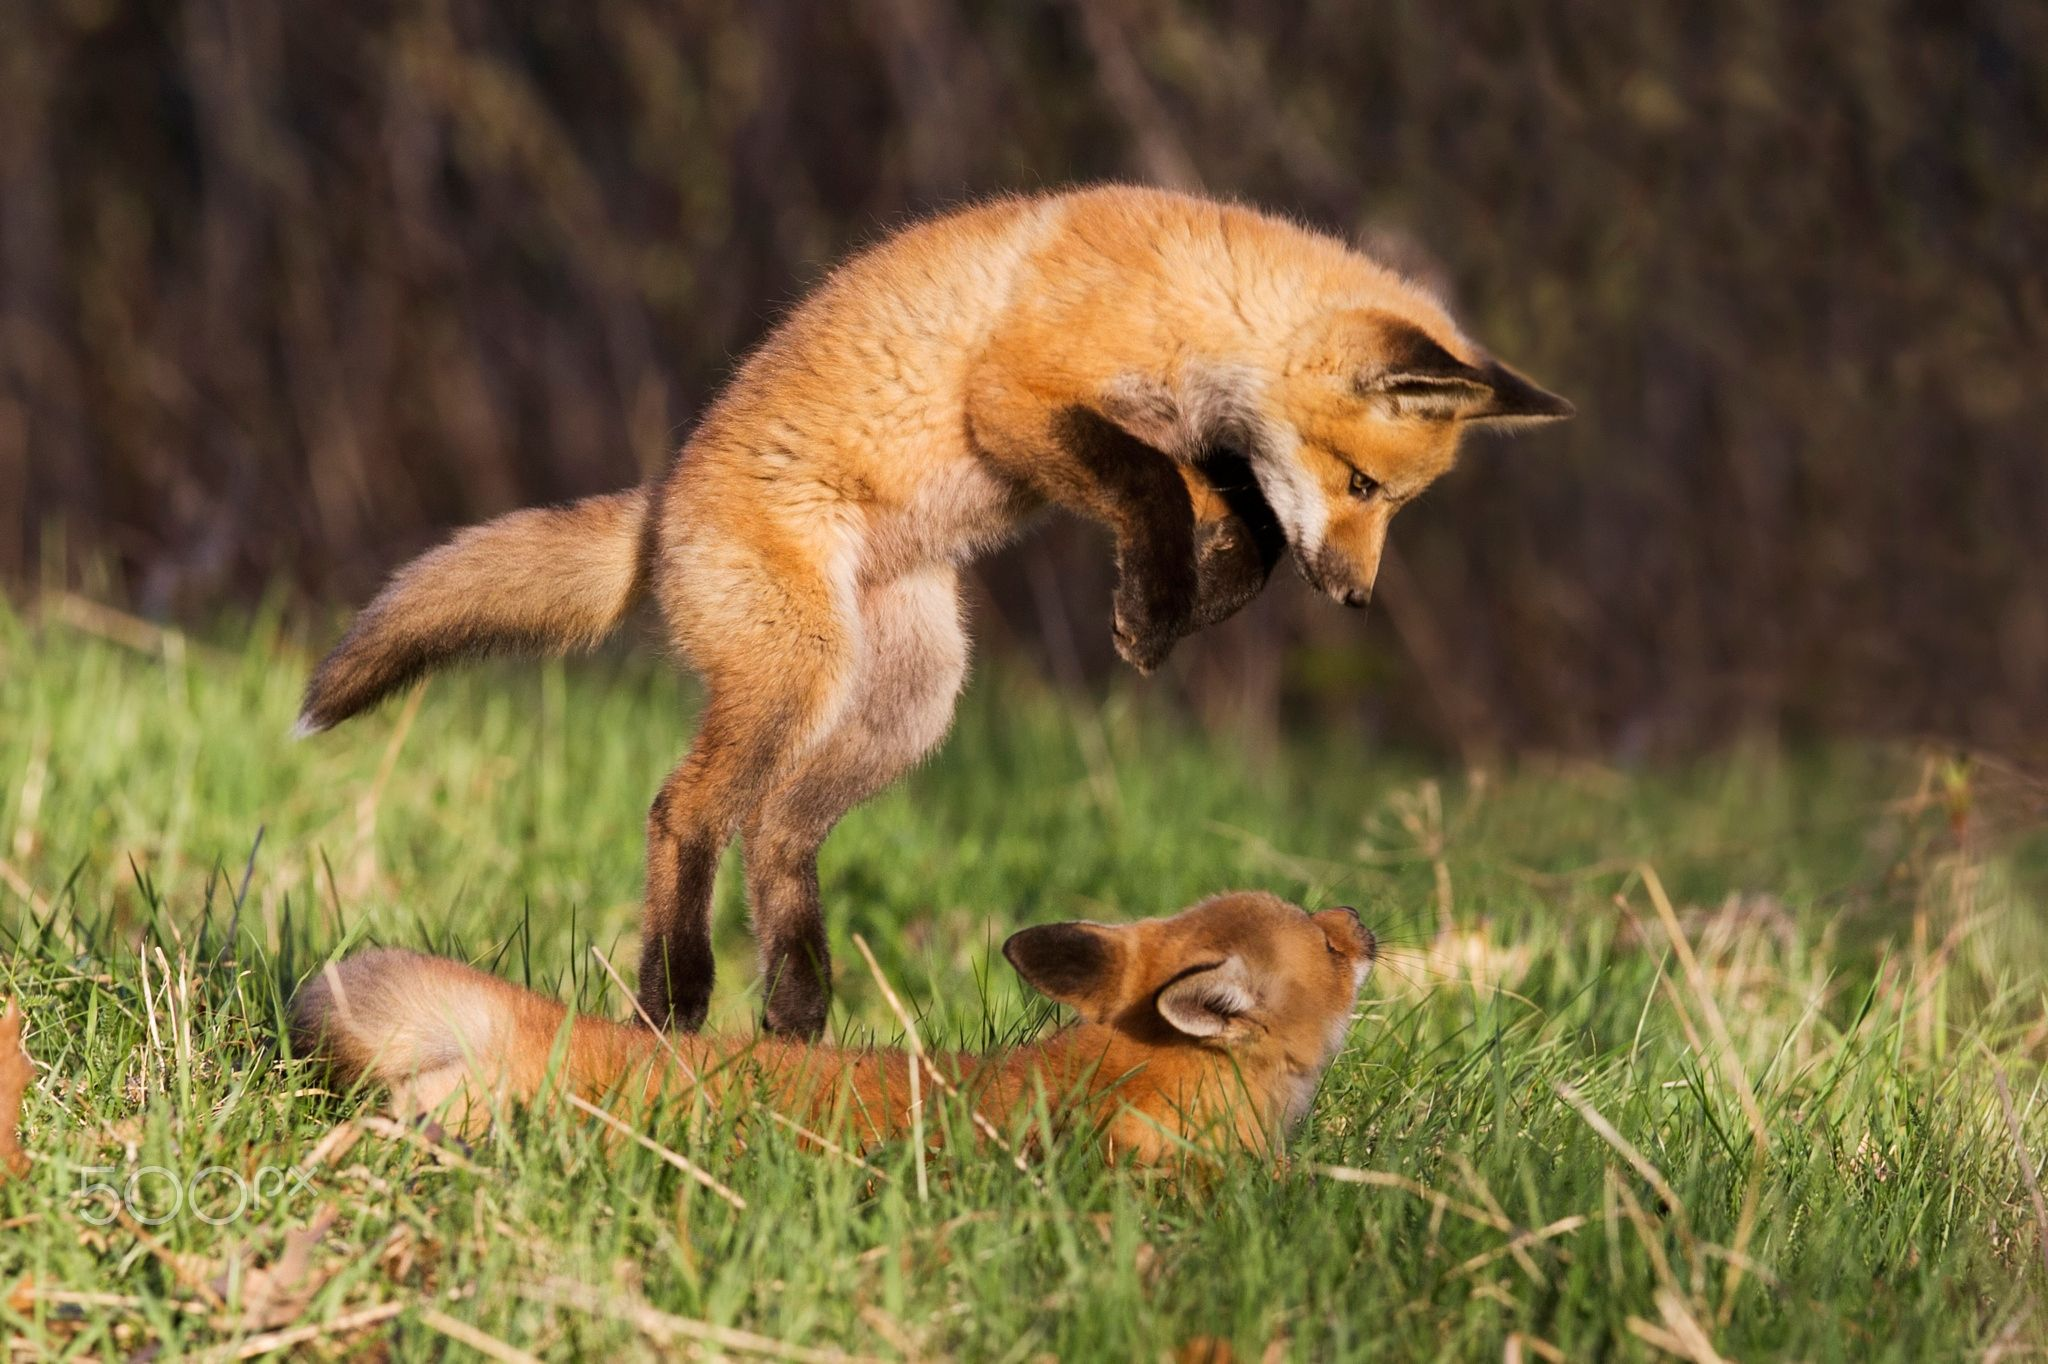 Playtime - Red fox pups in spring